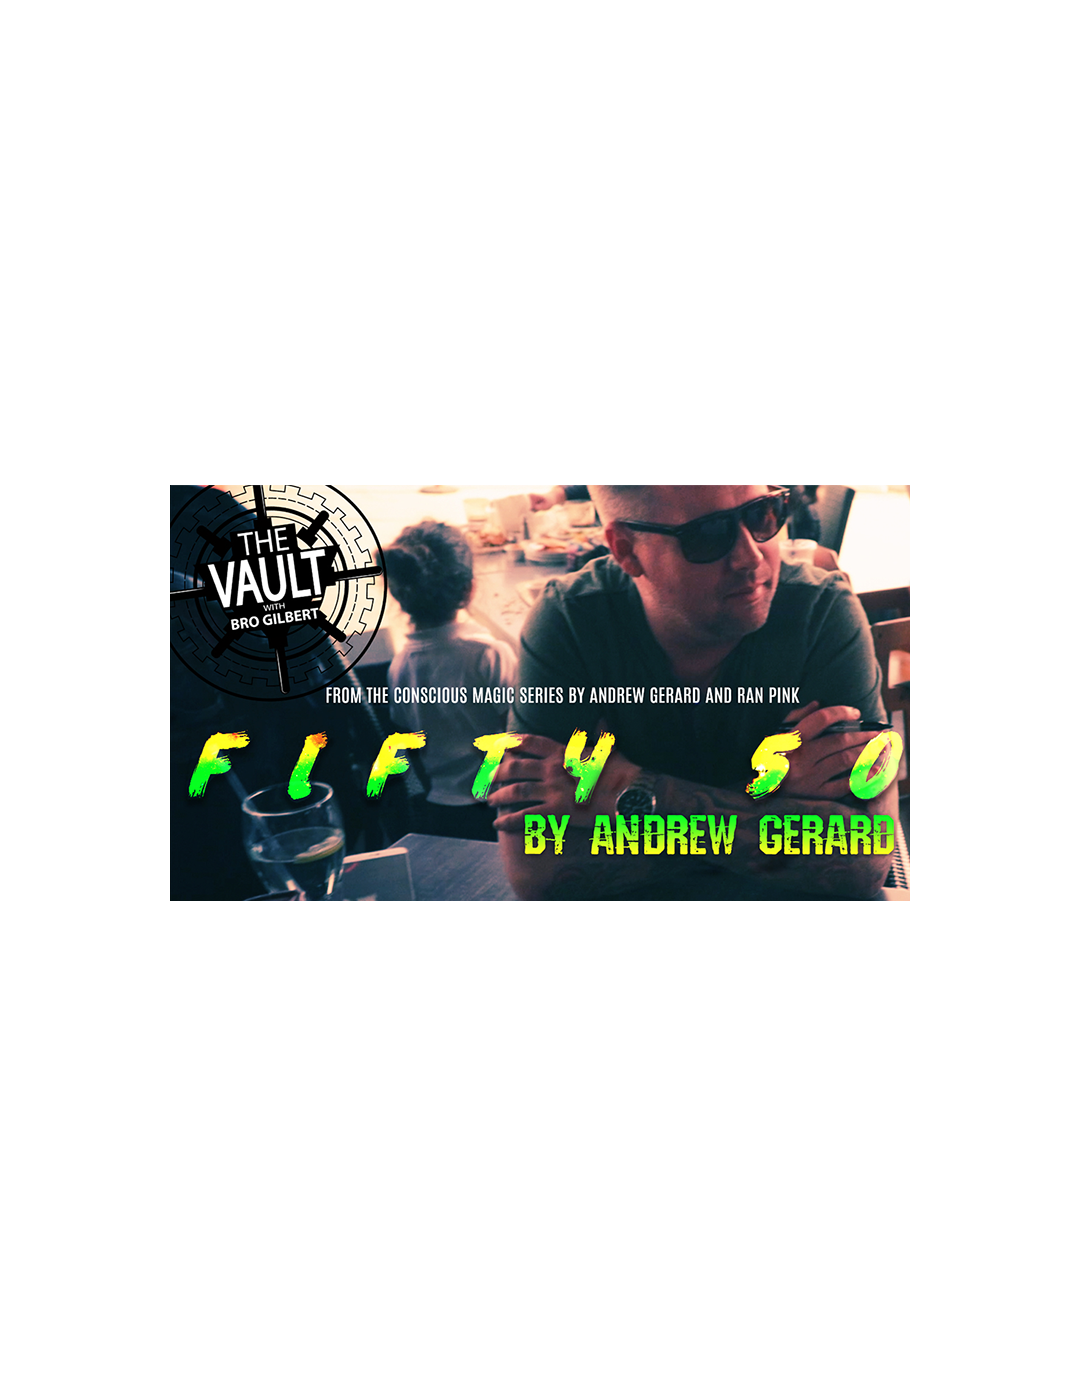 The Vault - FIFTY 50 by Andrew Gerard (Descarca instant) - The Vault